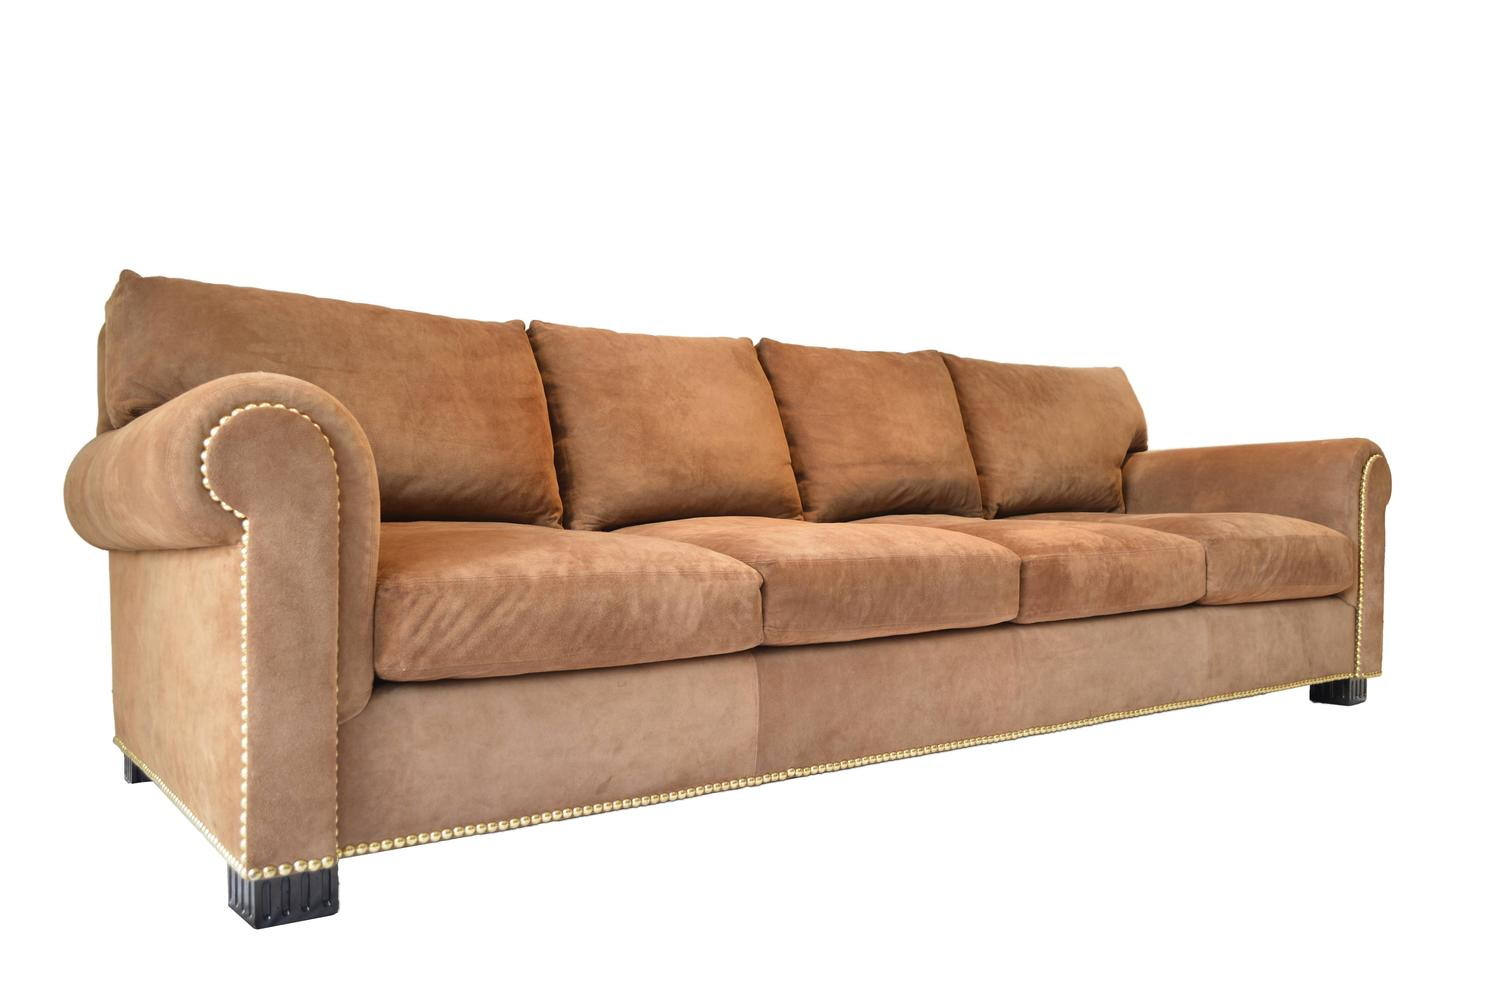 Most comfortable leather couch for Most comfortable couches for sale